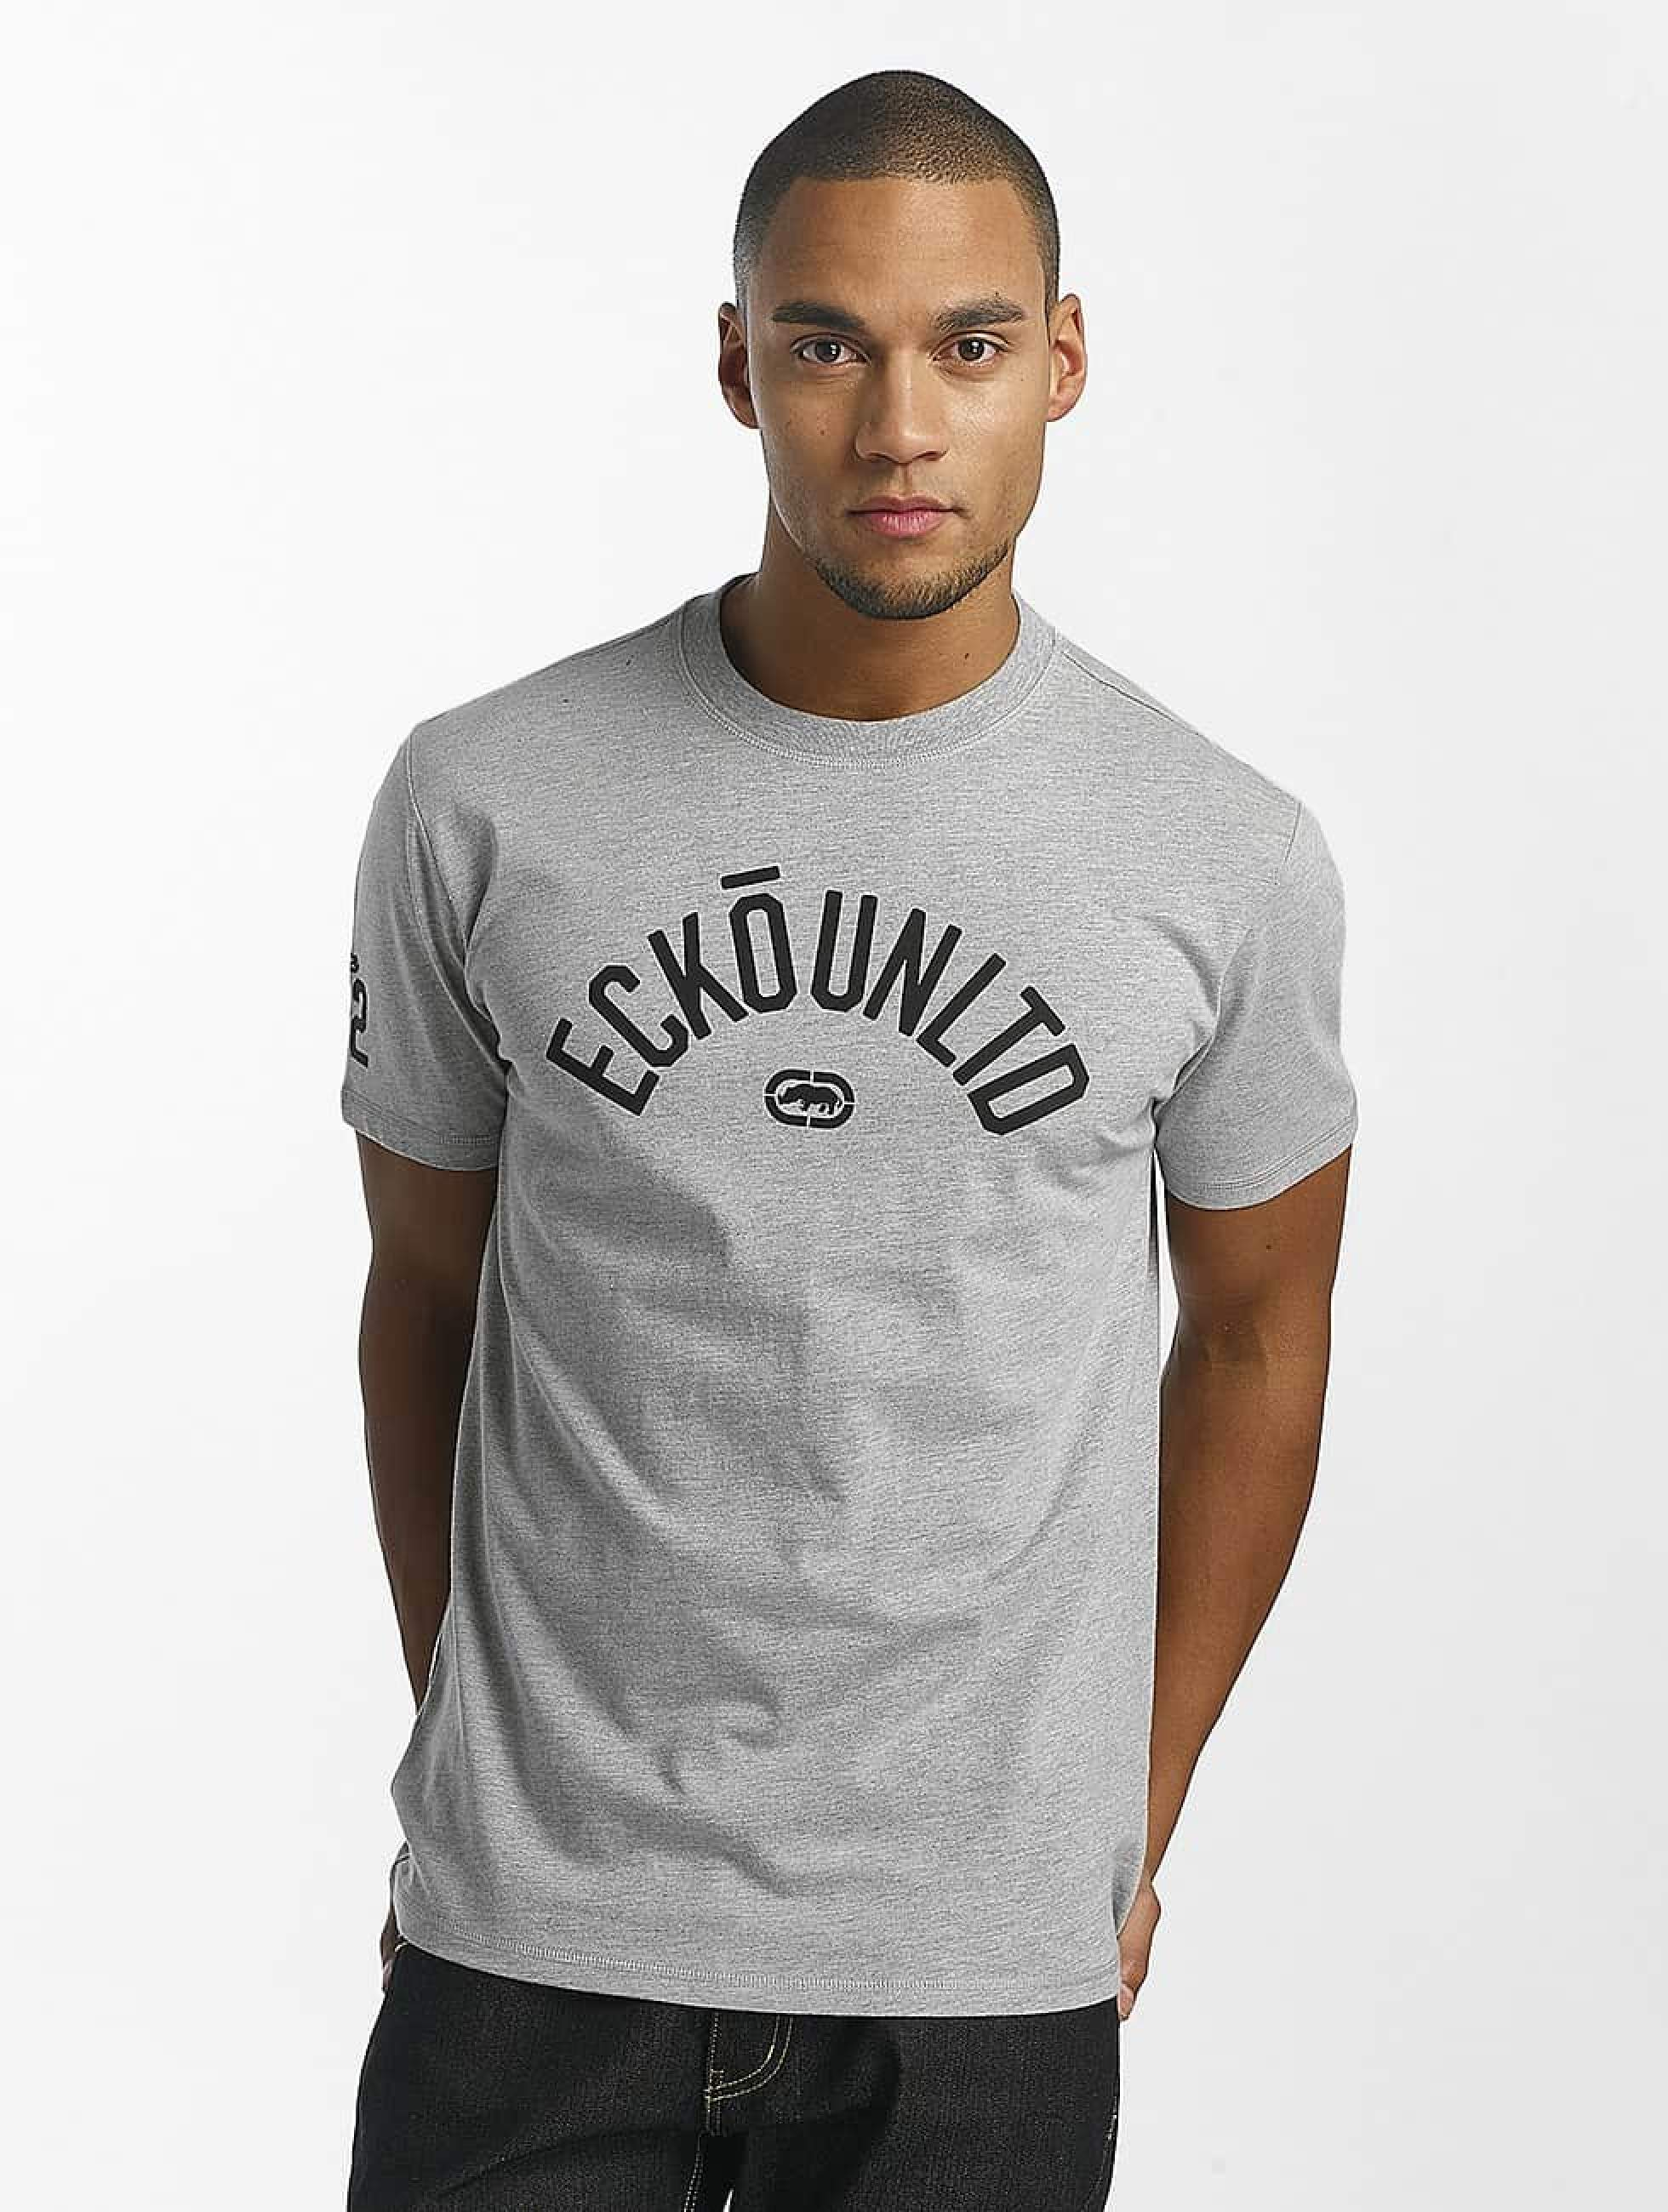 Ecko Unltd. / T-Shirt Base in grey S